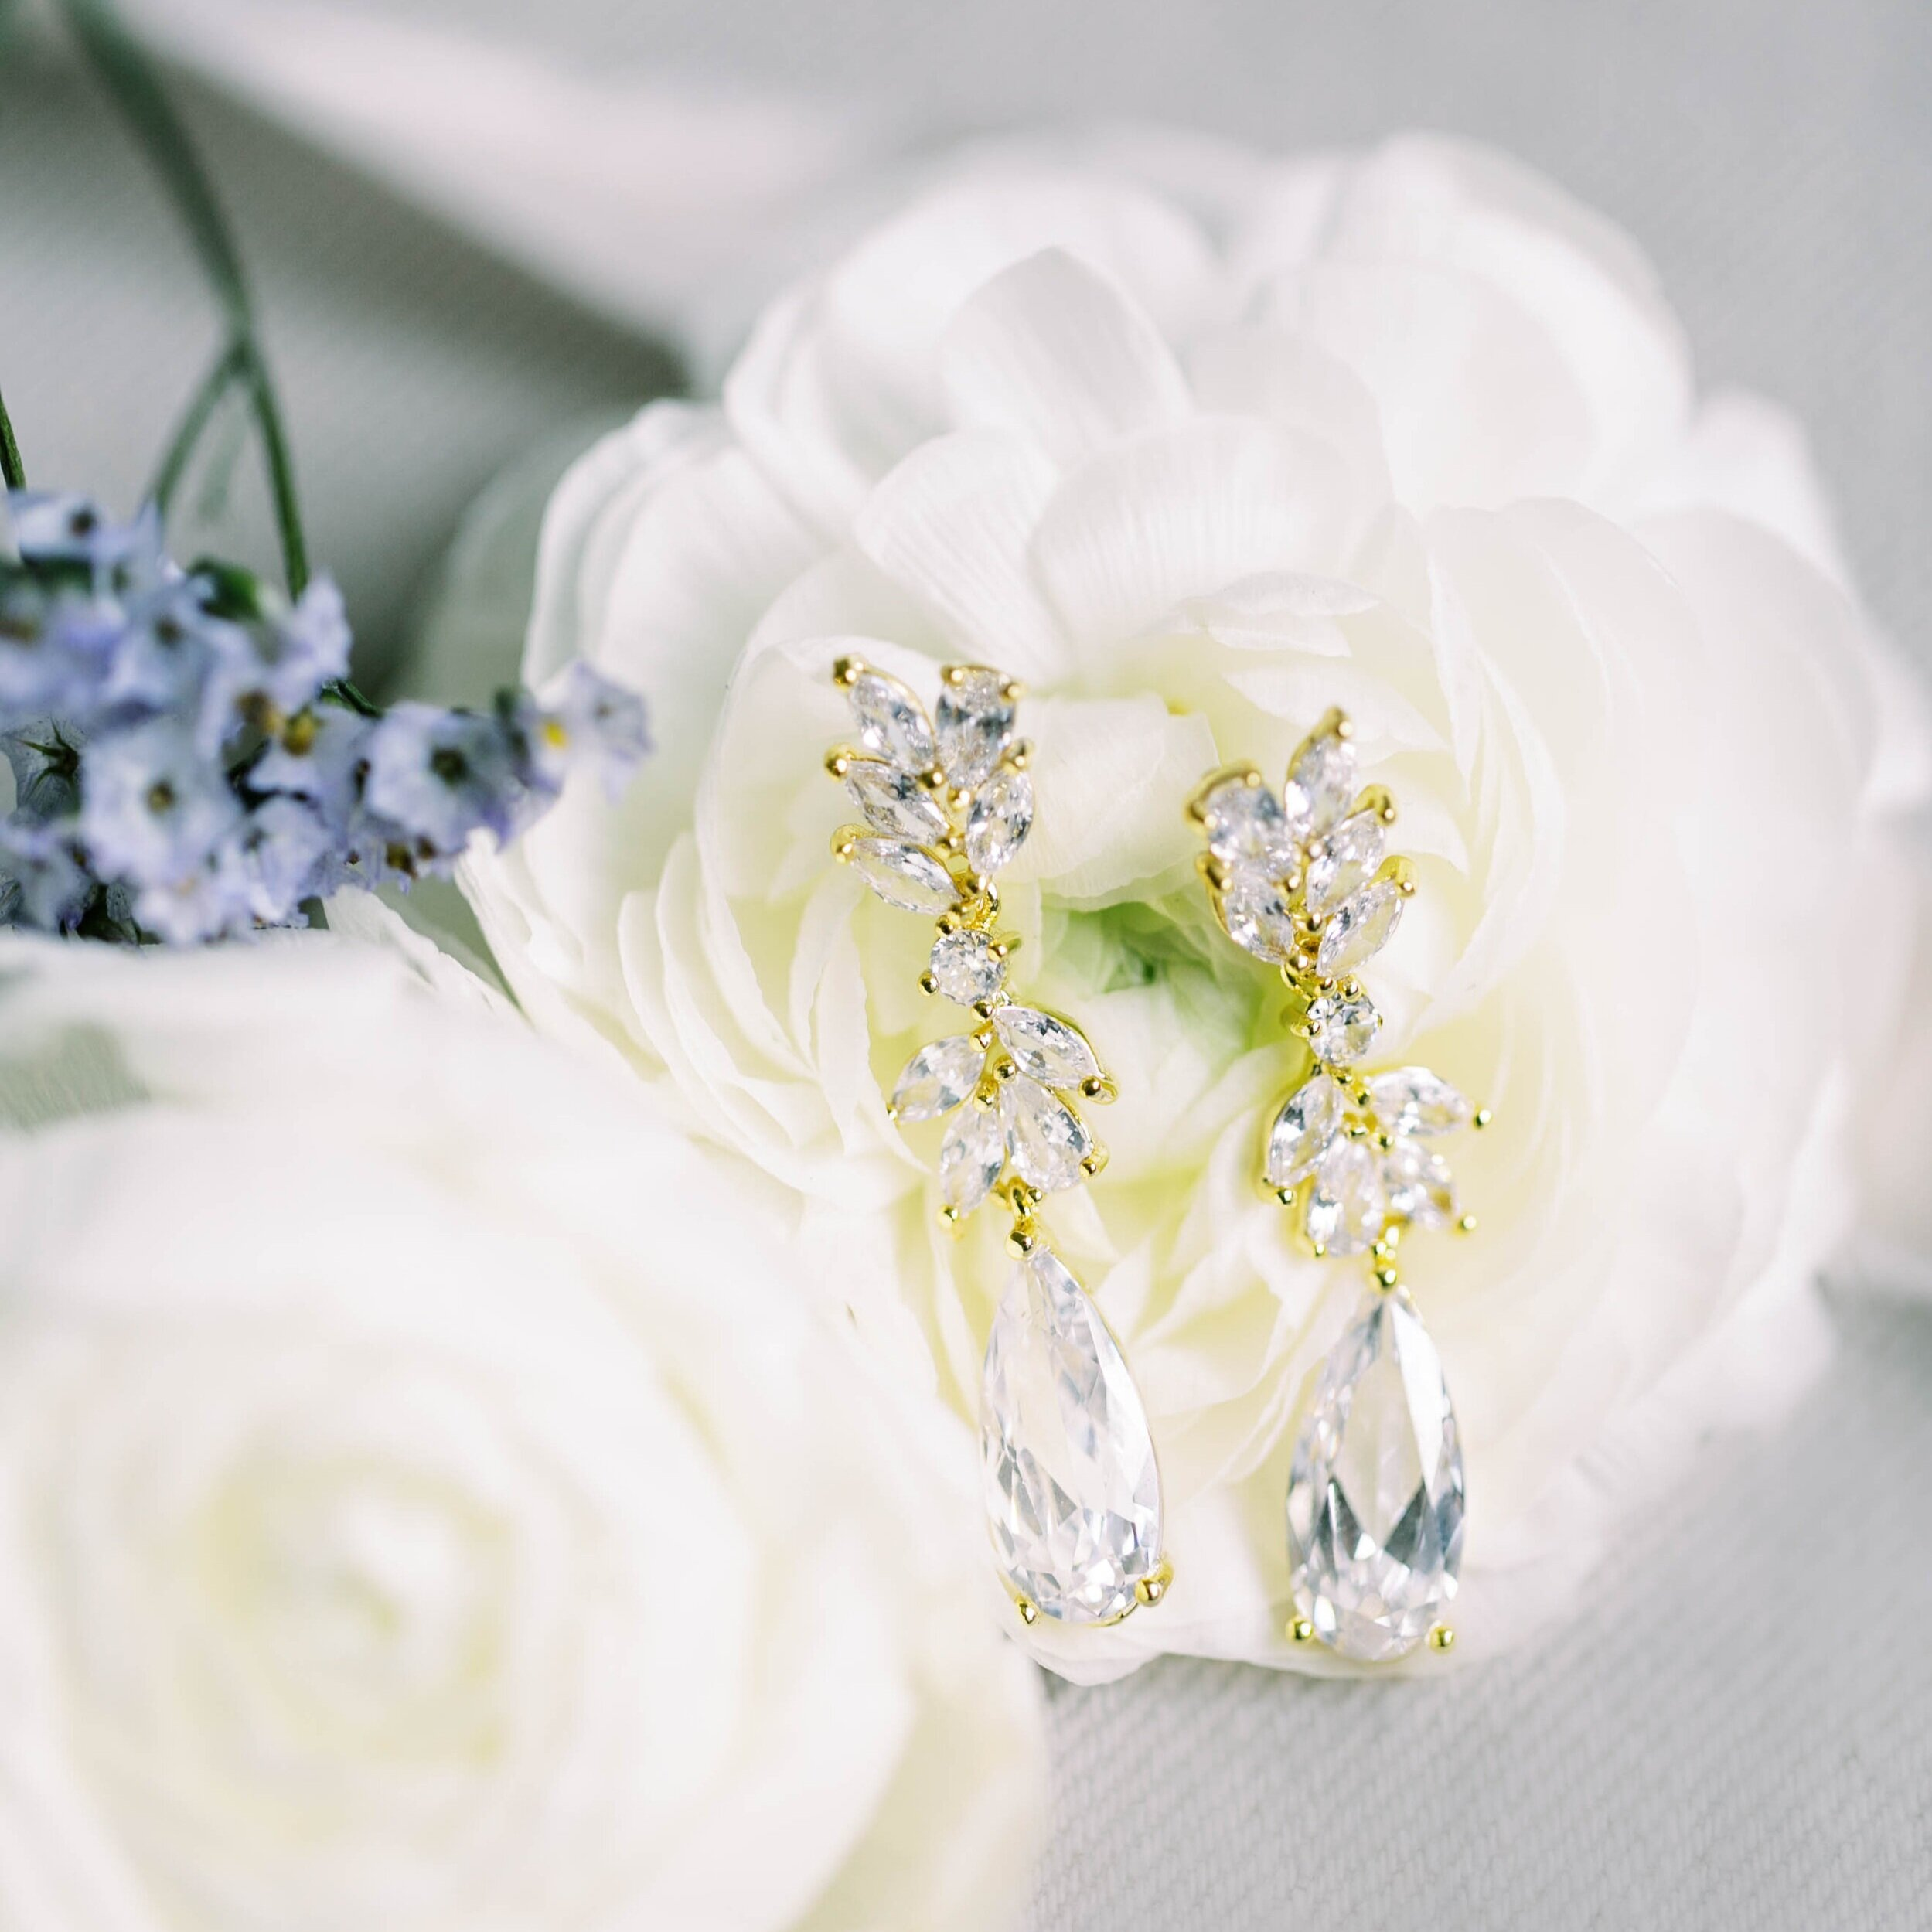 Investment - I offer several different wedding collections to fit every couple. I hope we can work together to make your wedding dreams come true.